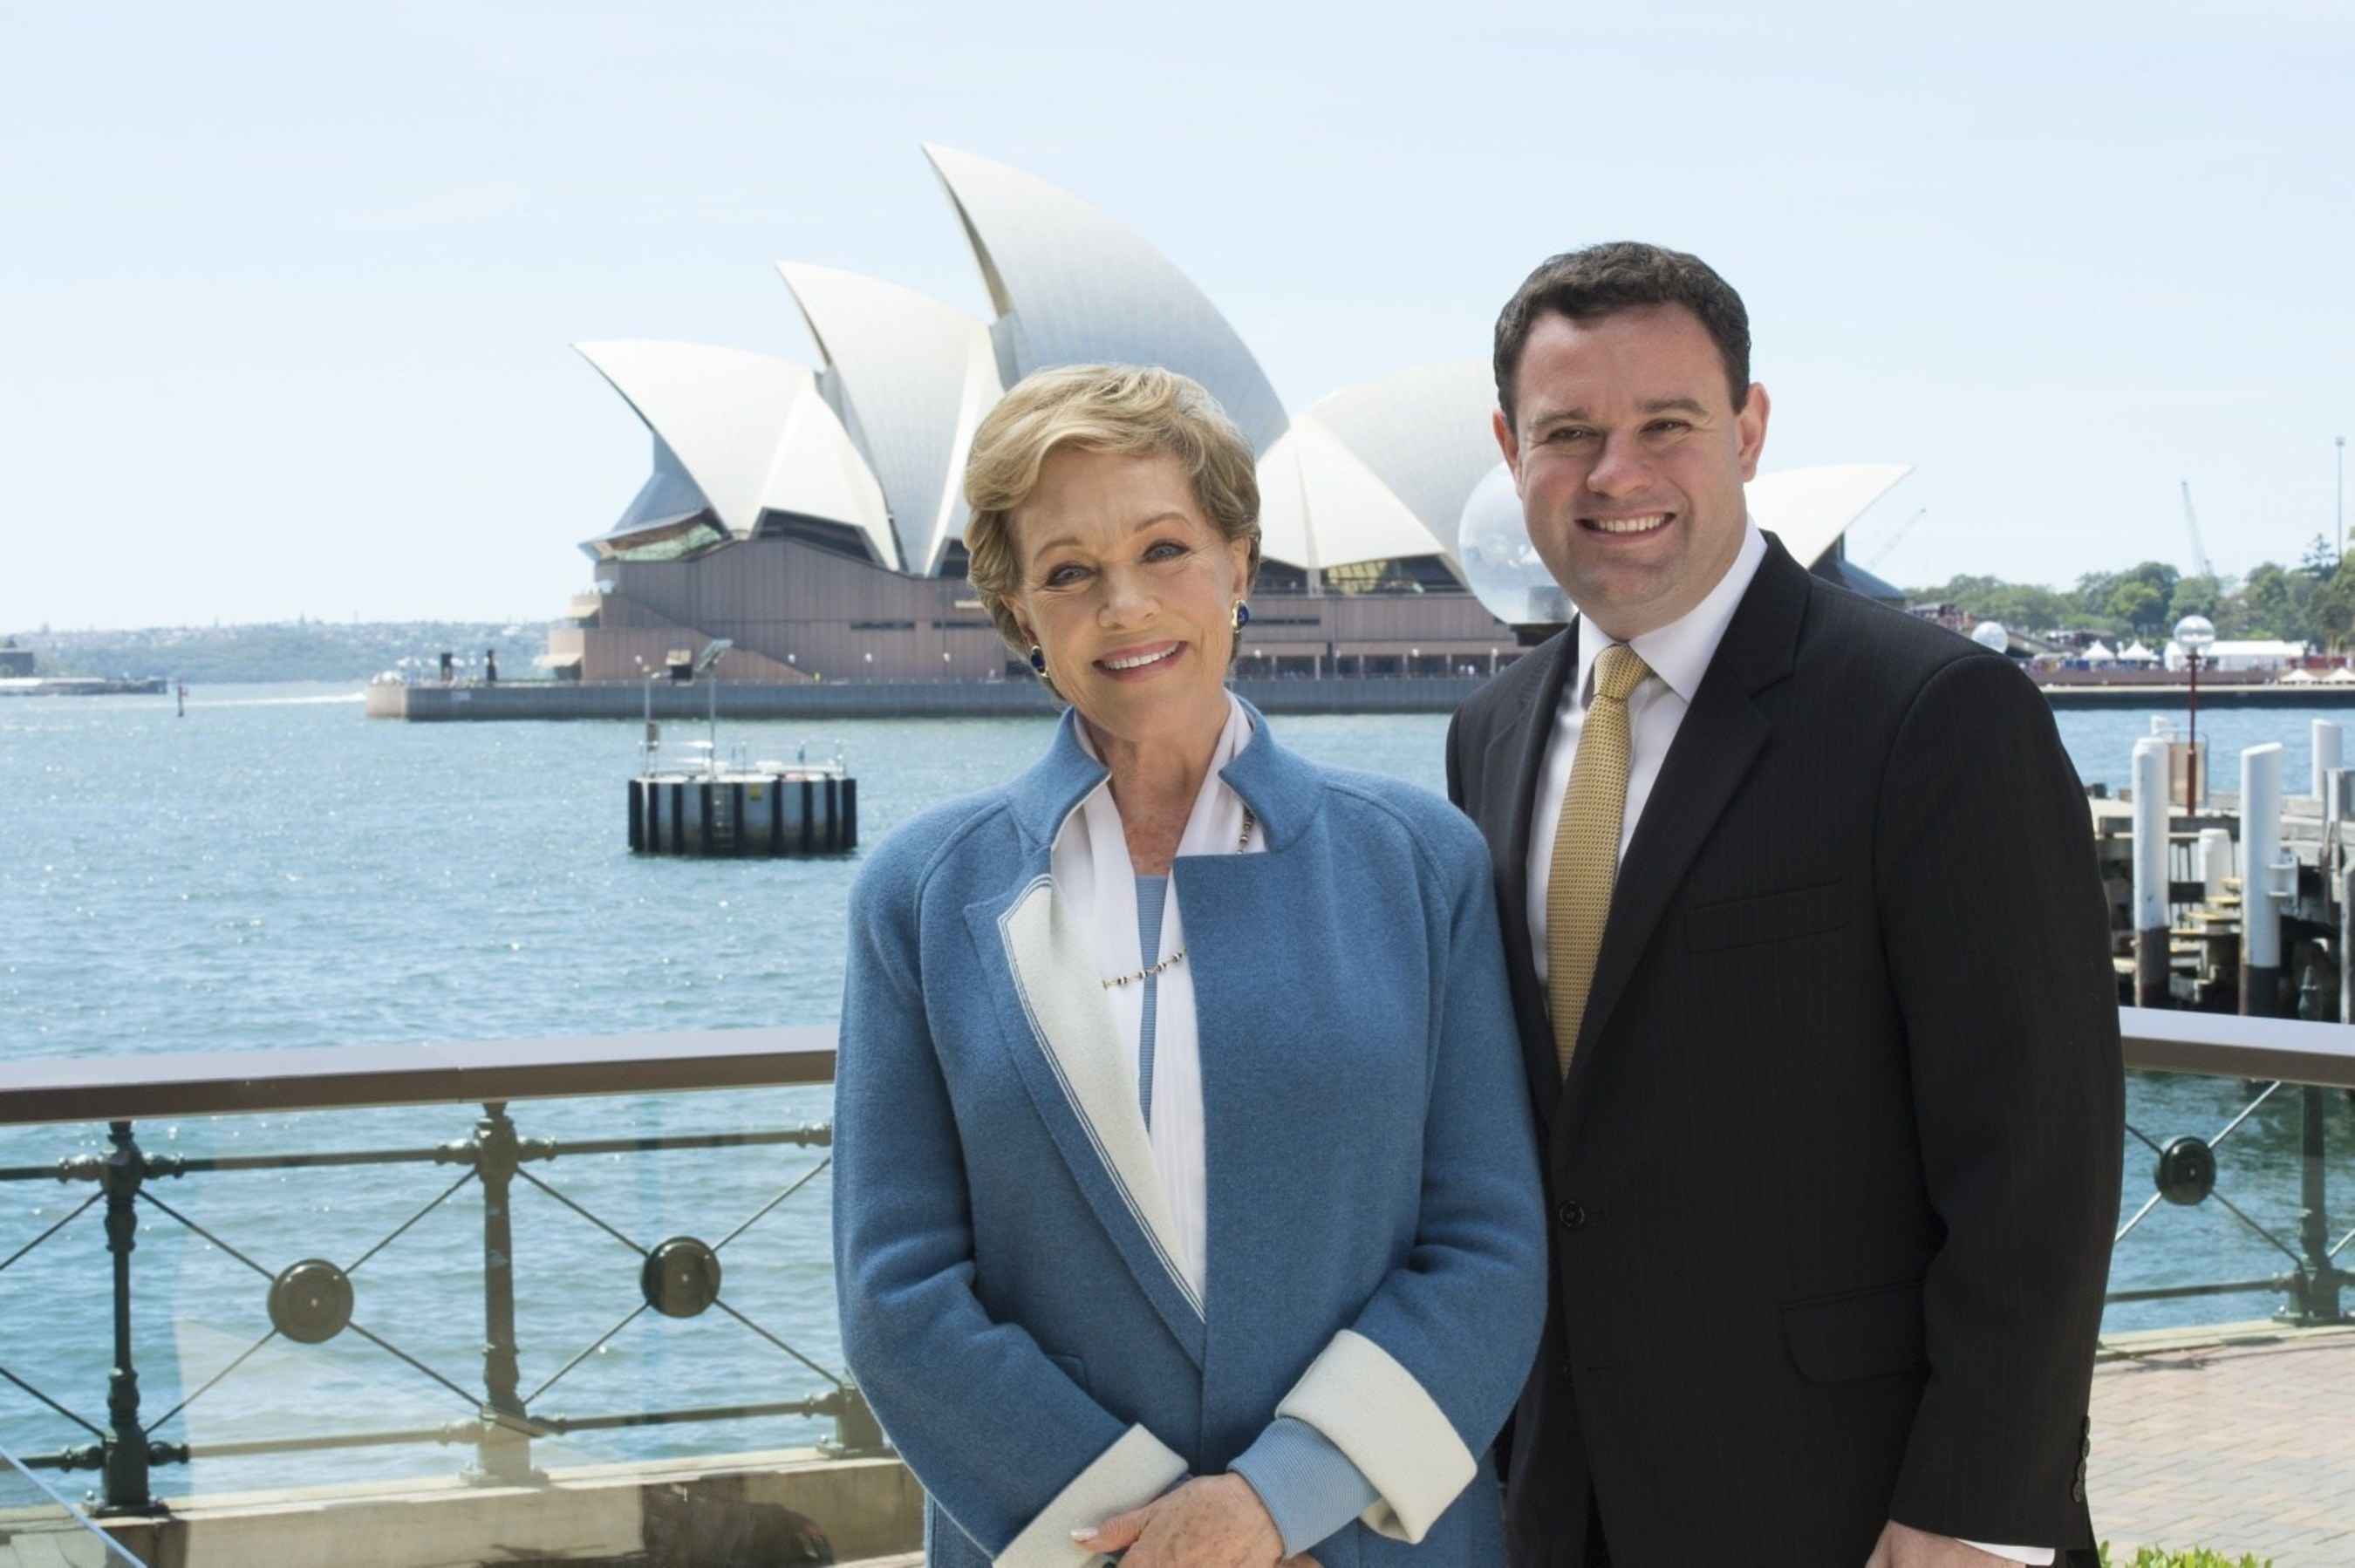 NSW Minister for Trade, Tourism and Major Events, Stuart Ayres welcomes Dame Julie Andrews to Sydney, Image: ...